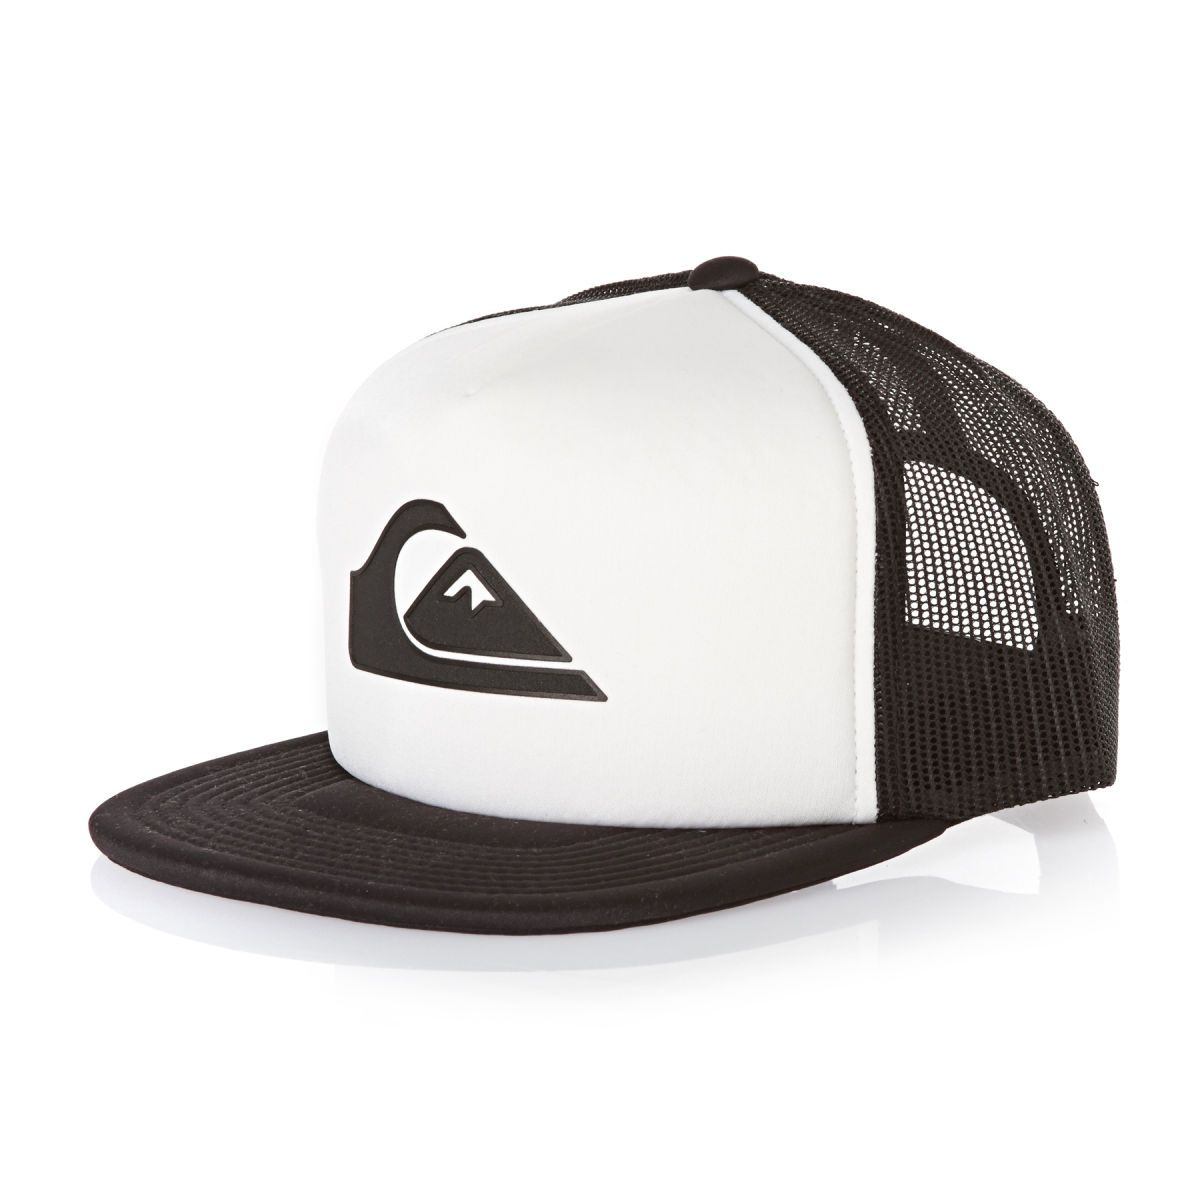 quiksilver trucker hat - Google Search  a87e814b538